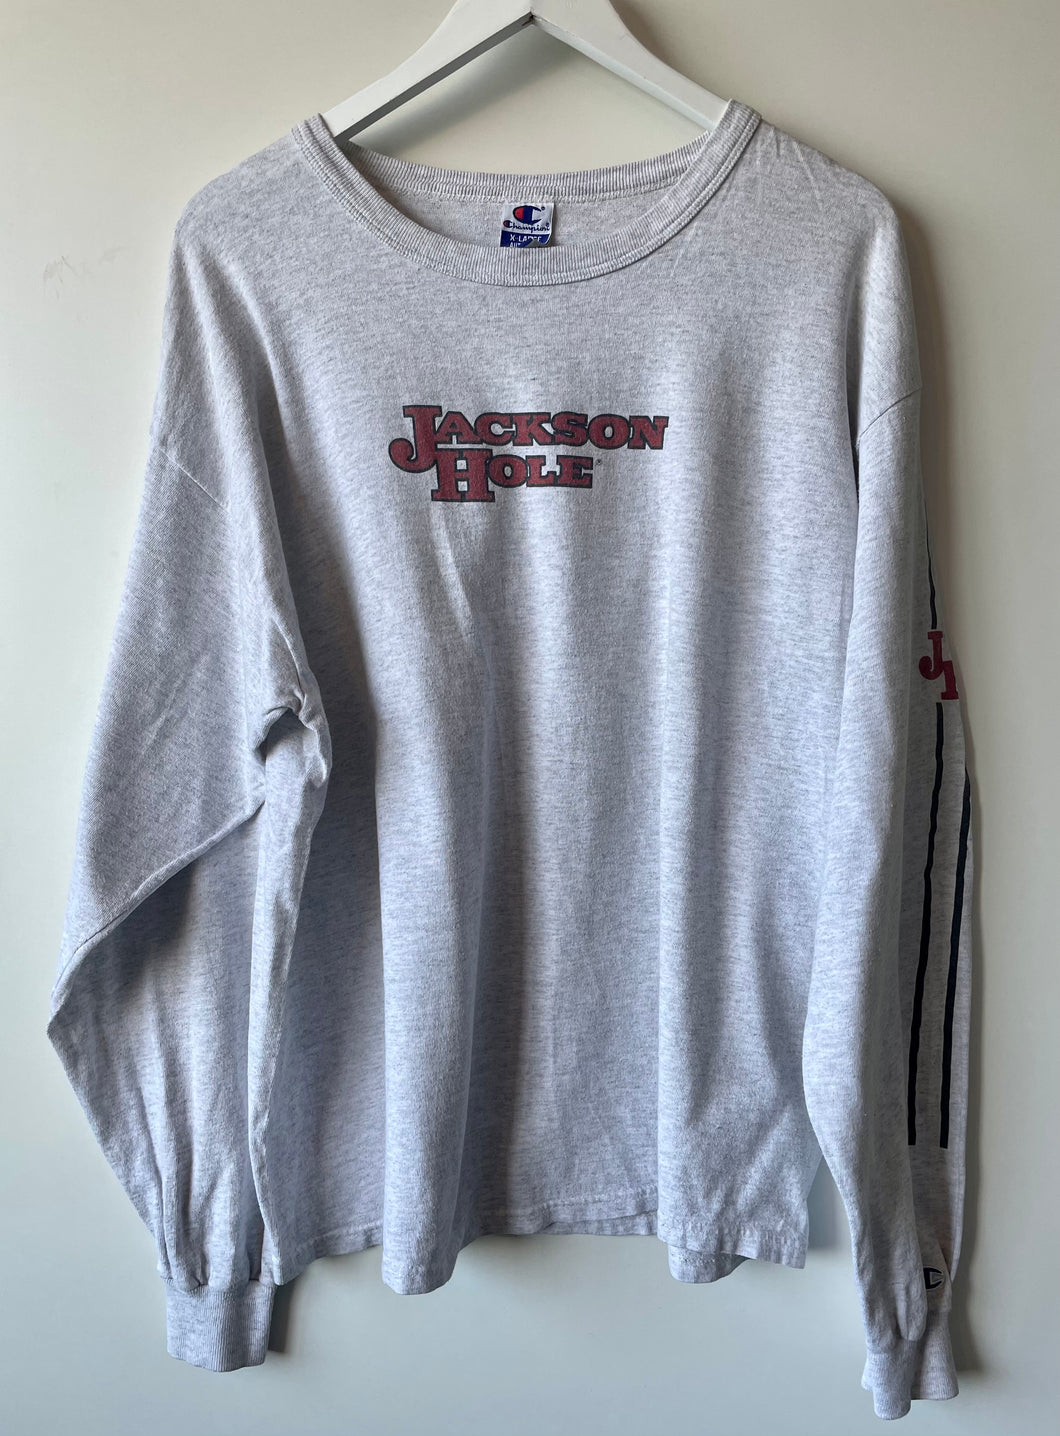 Champion Jackson Hole Long sleeve top